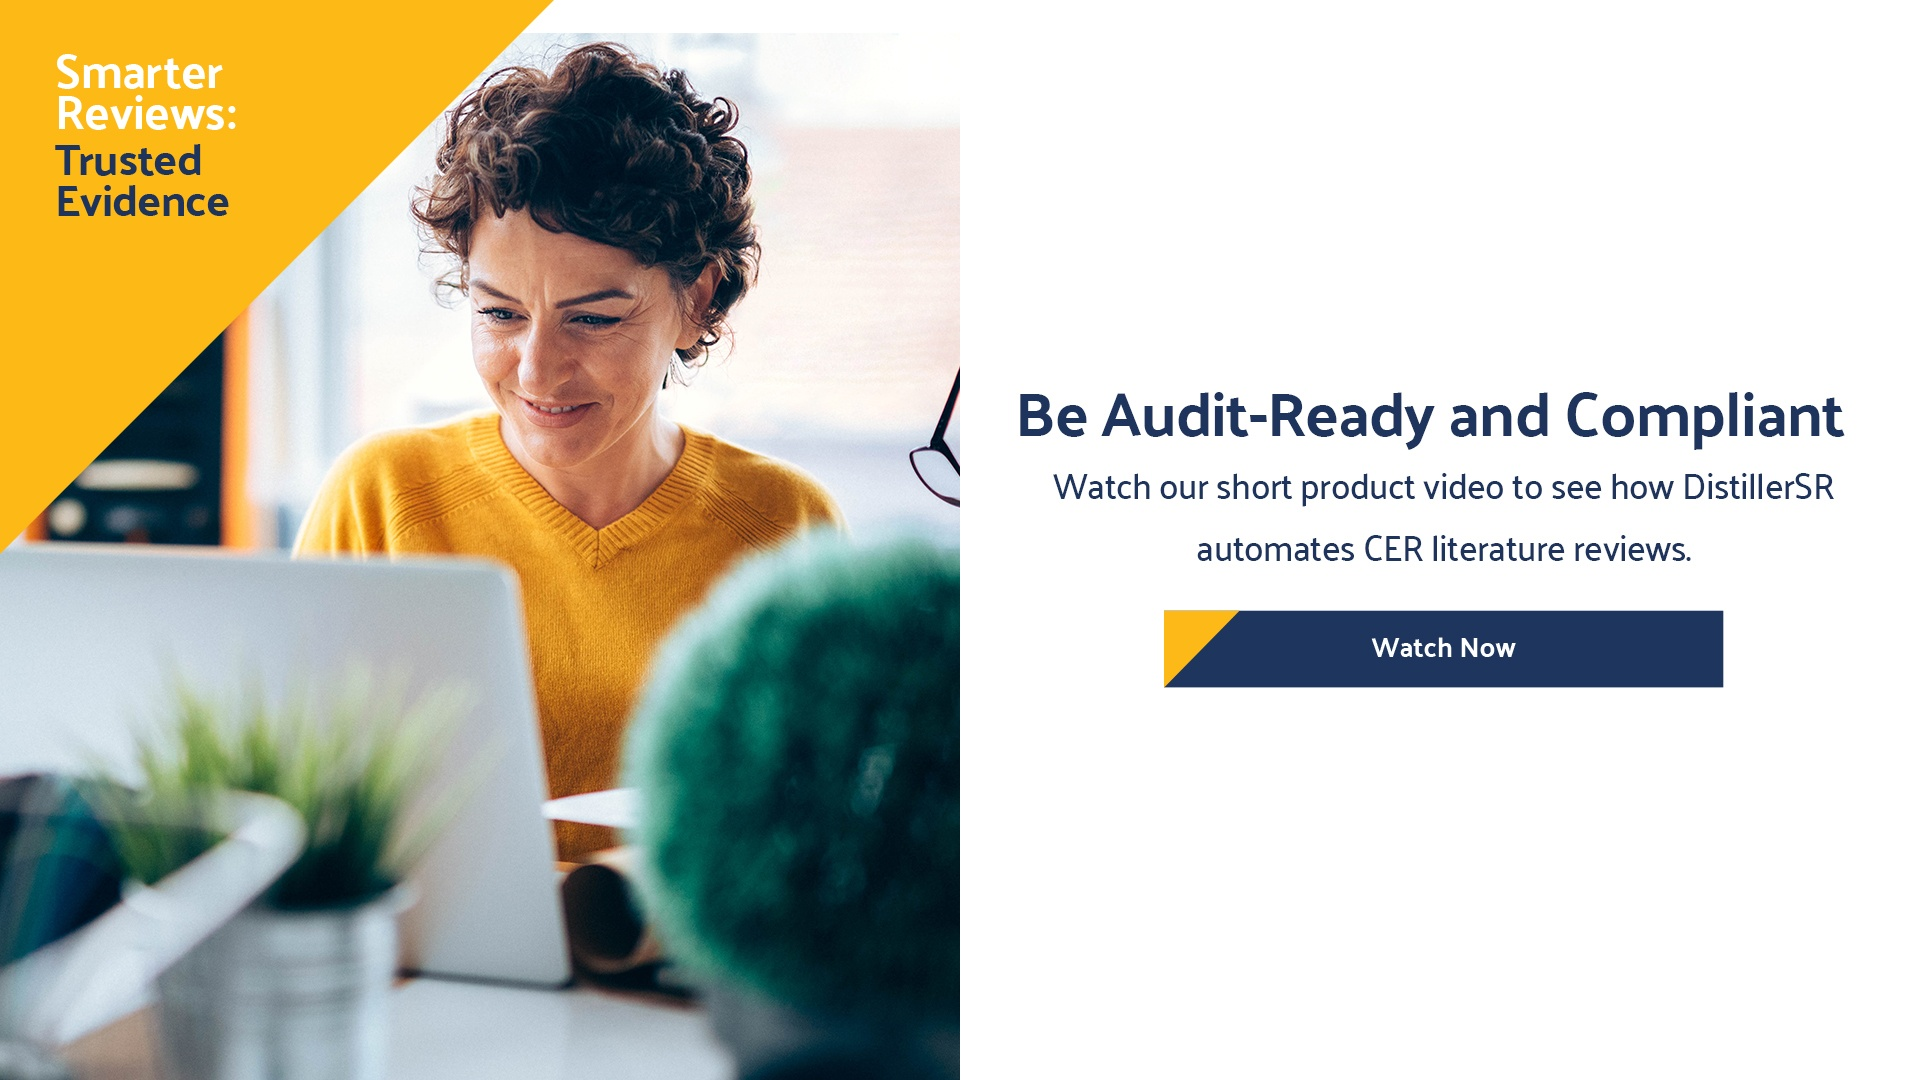 Download our product fact sheet to see how distillerSR automates CER literature reviews.